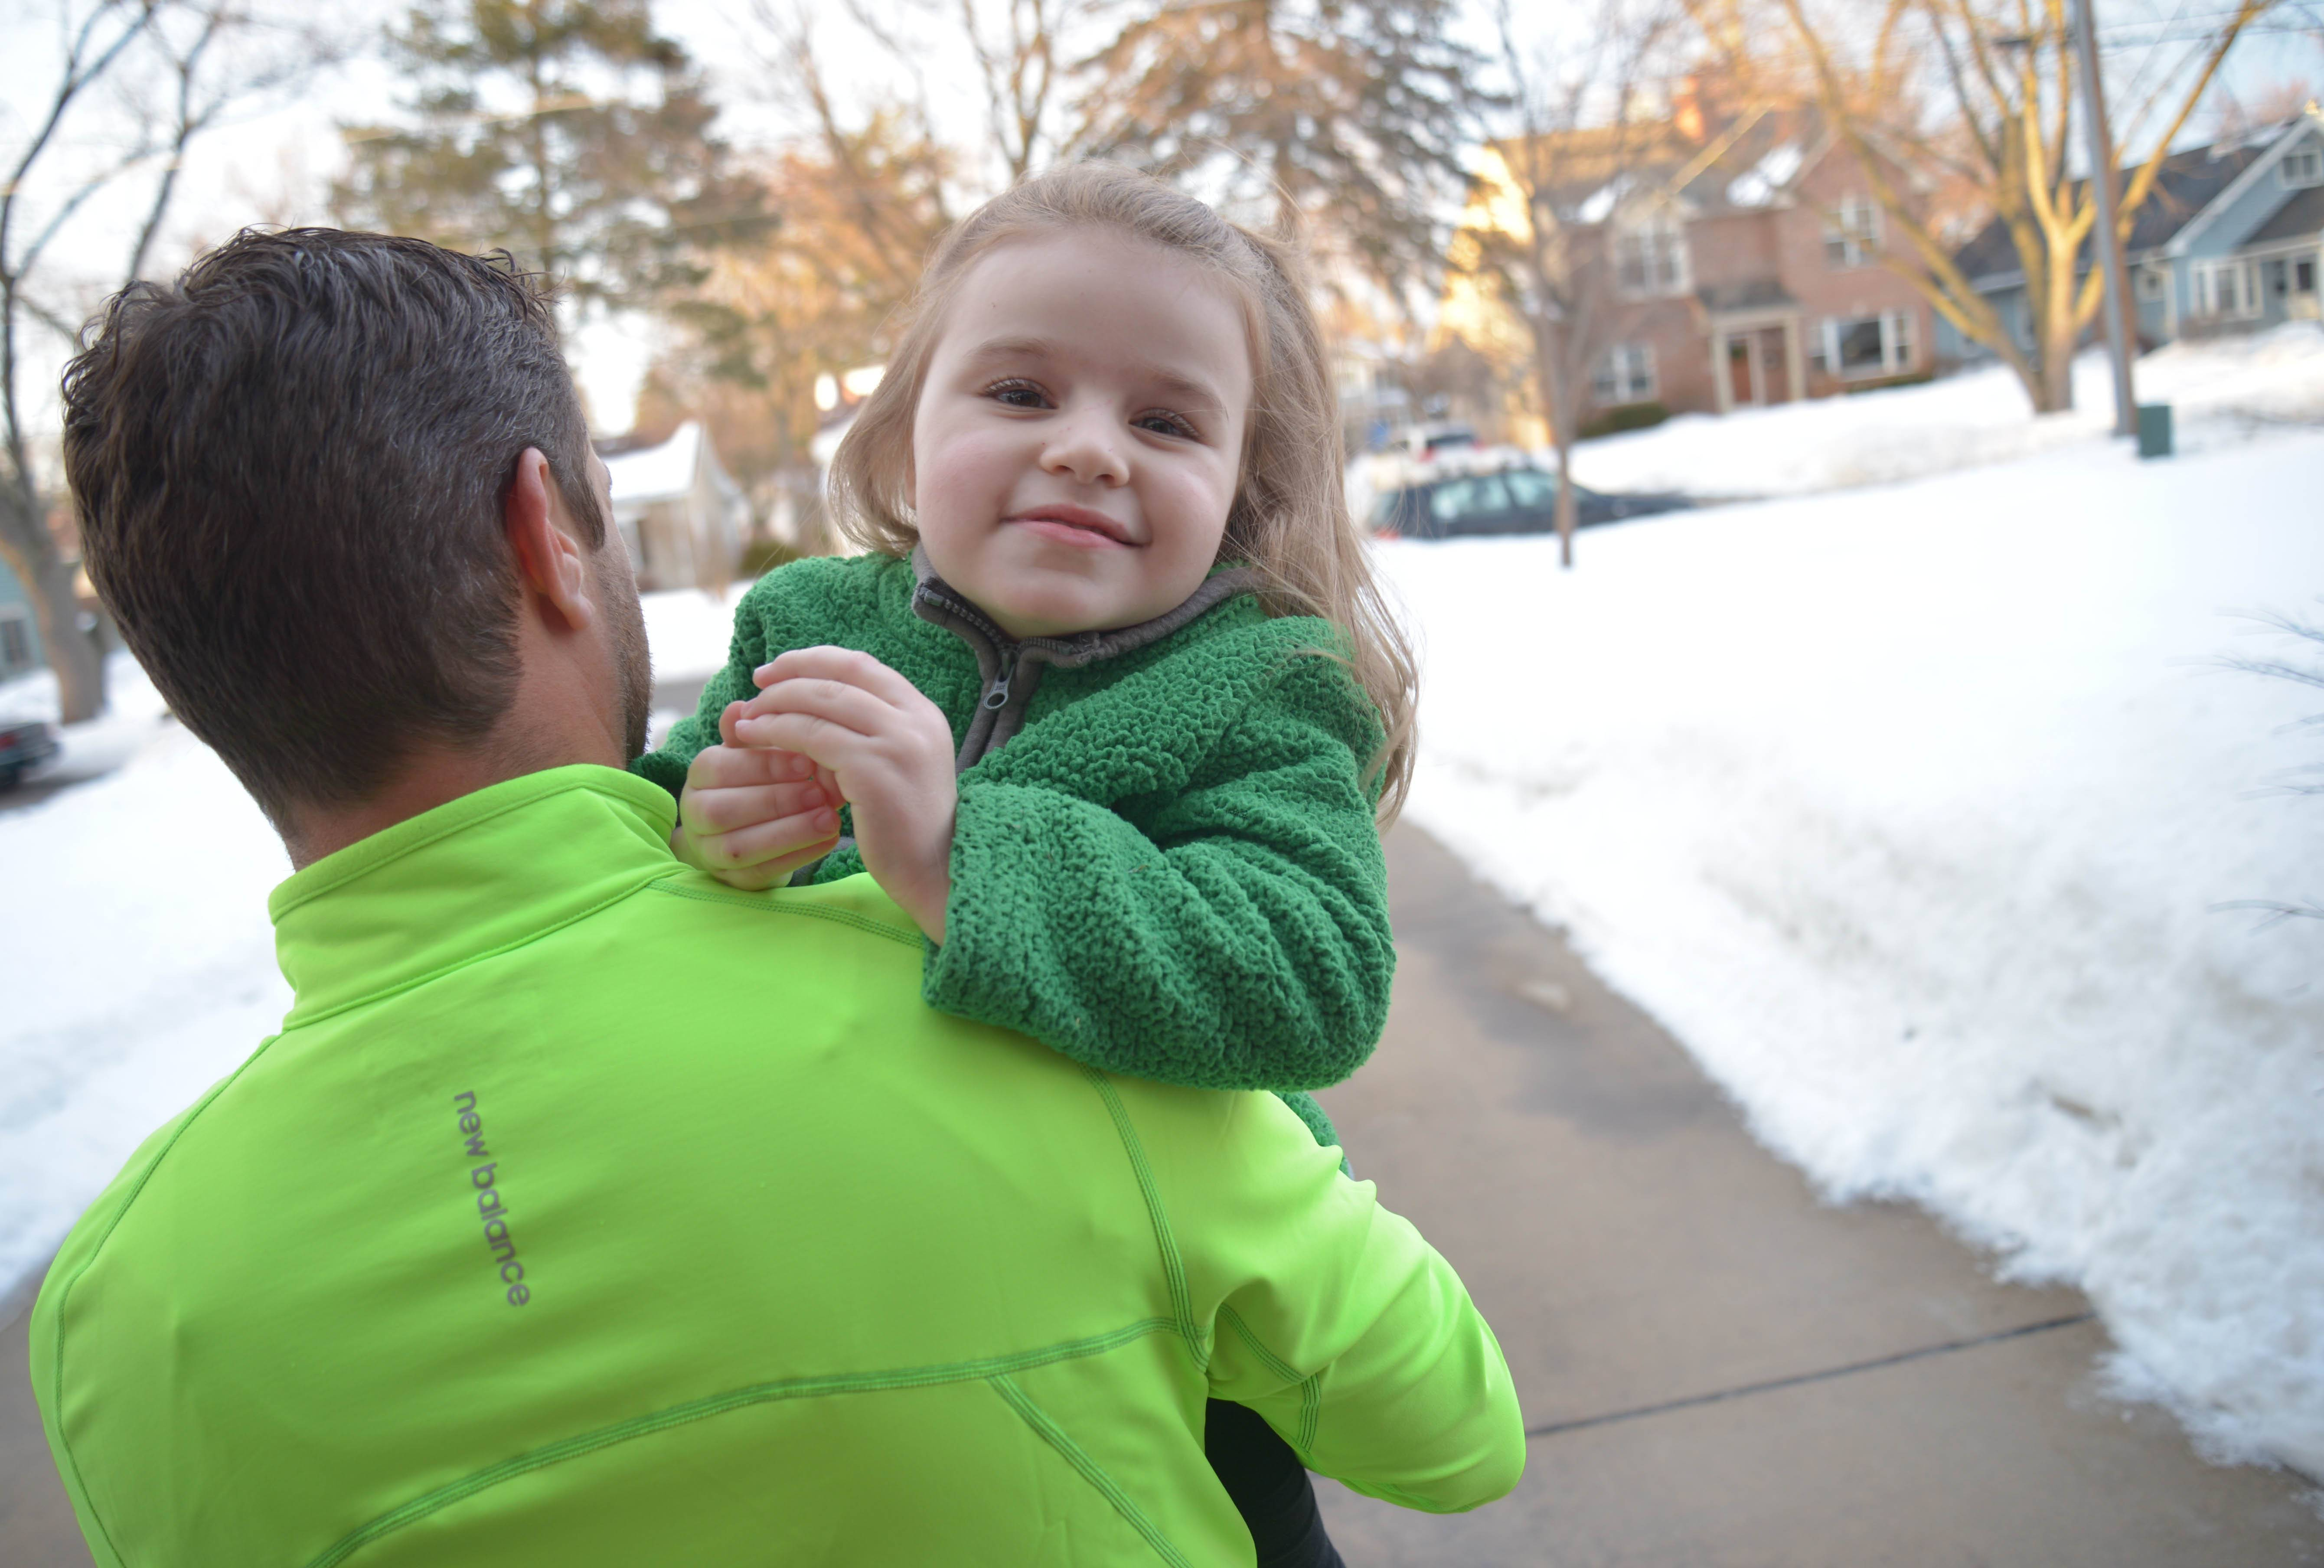 An adorable little girl with an infectious smile and laugh, Cammy Babiarz needs to be carried by her father, Bill. The girl, who turns 5 next month, can't walk, talk or control her hands because of a genetic, neurological disorder known as Rett syndrome.